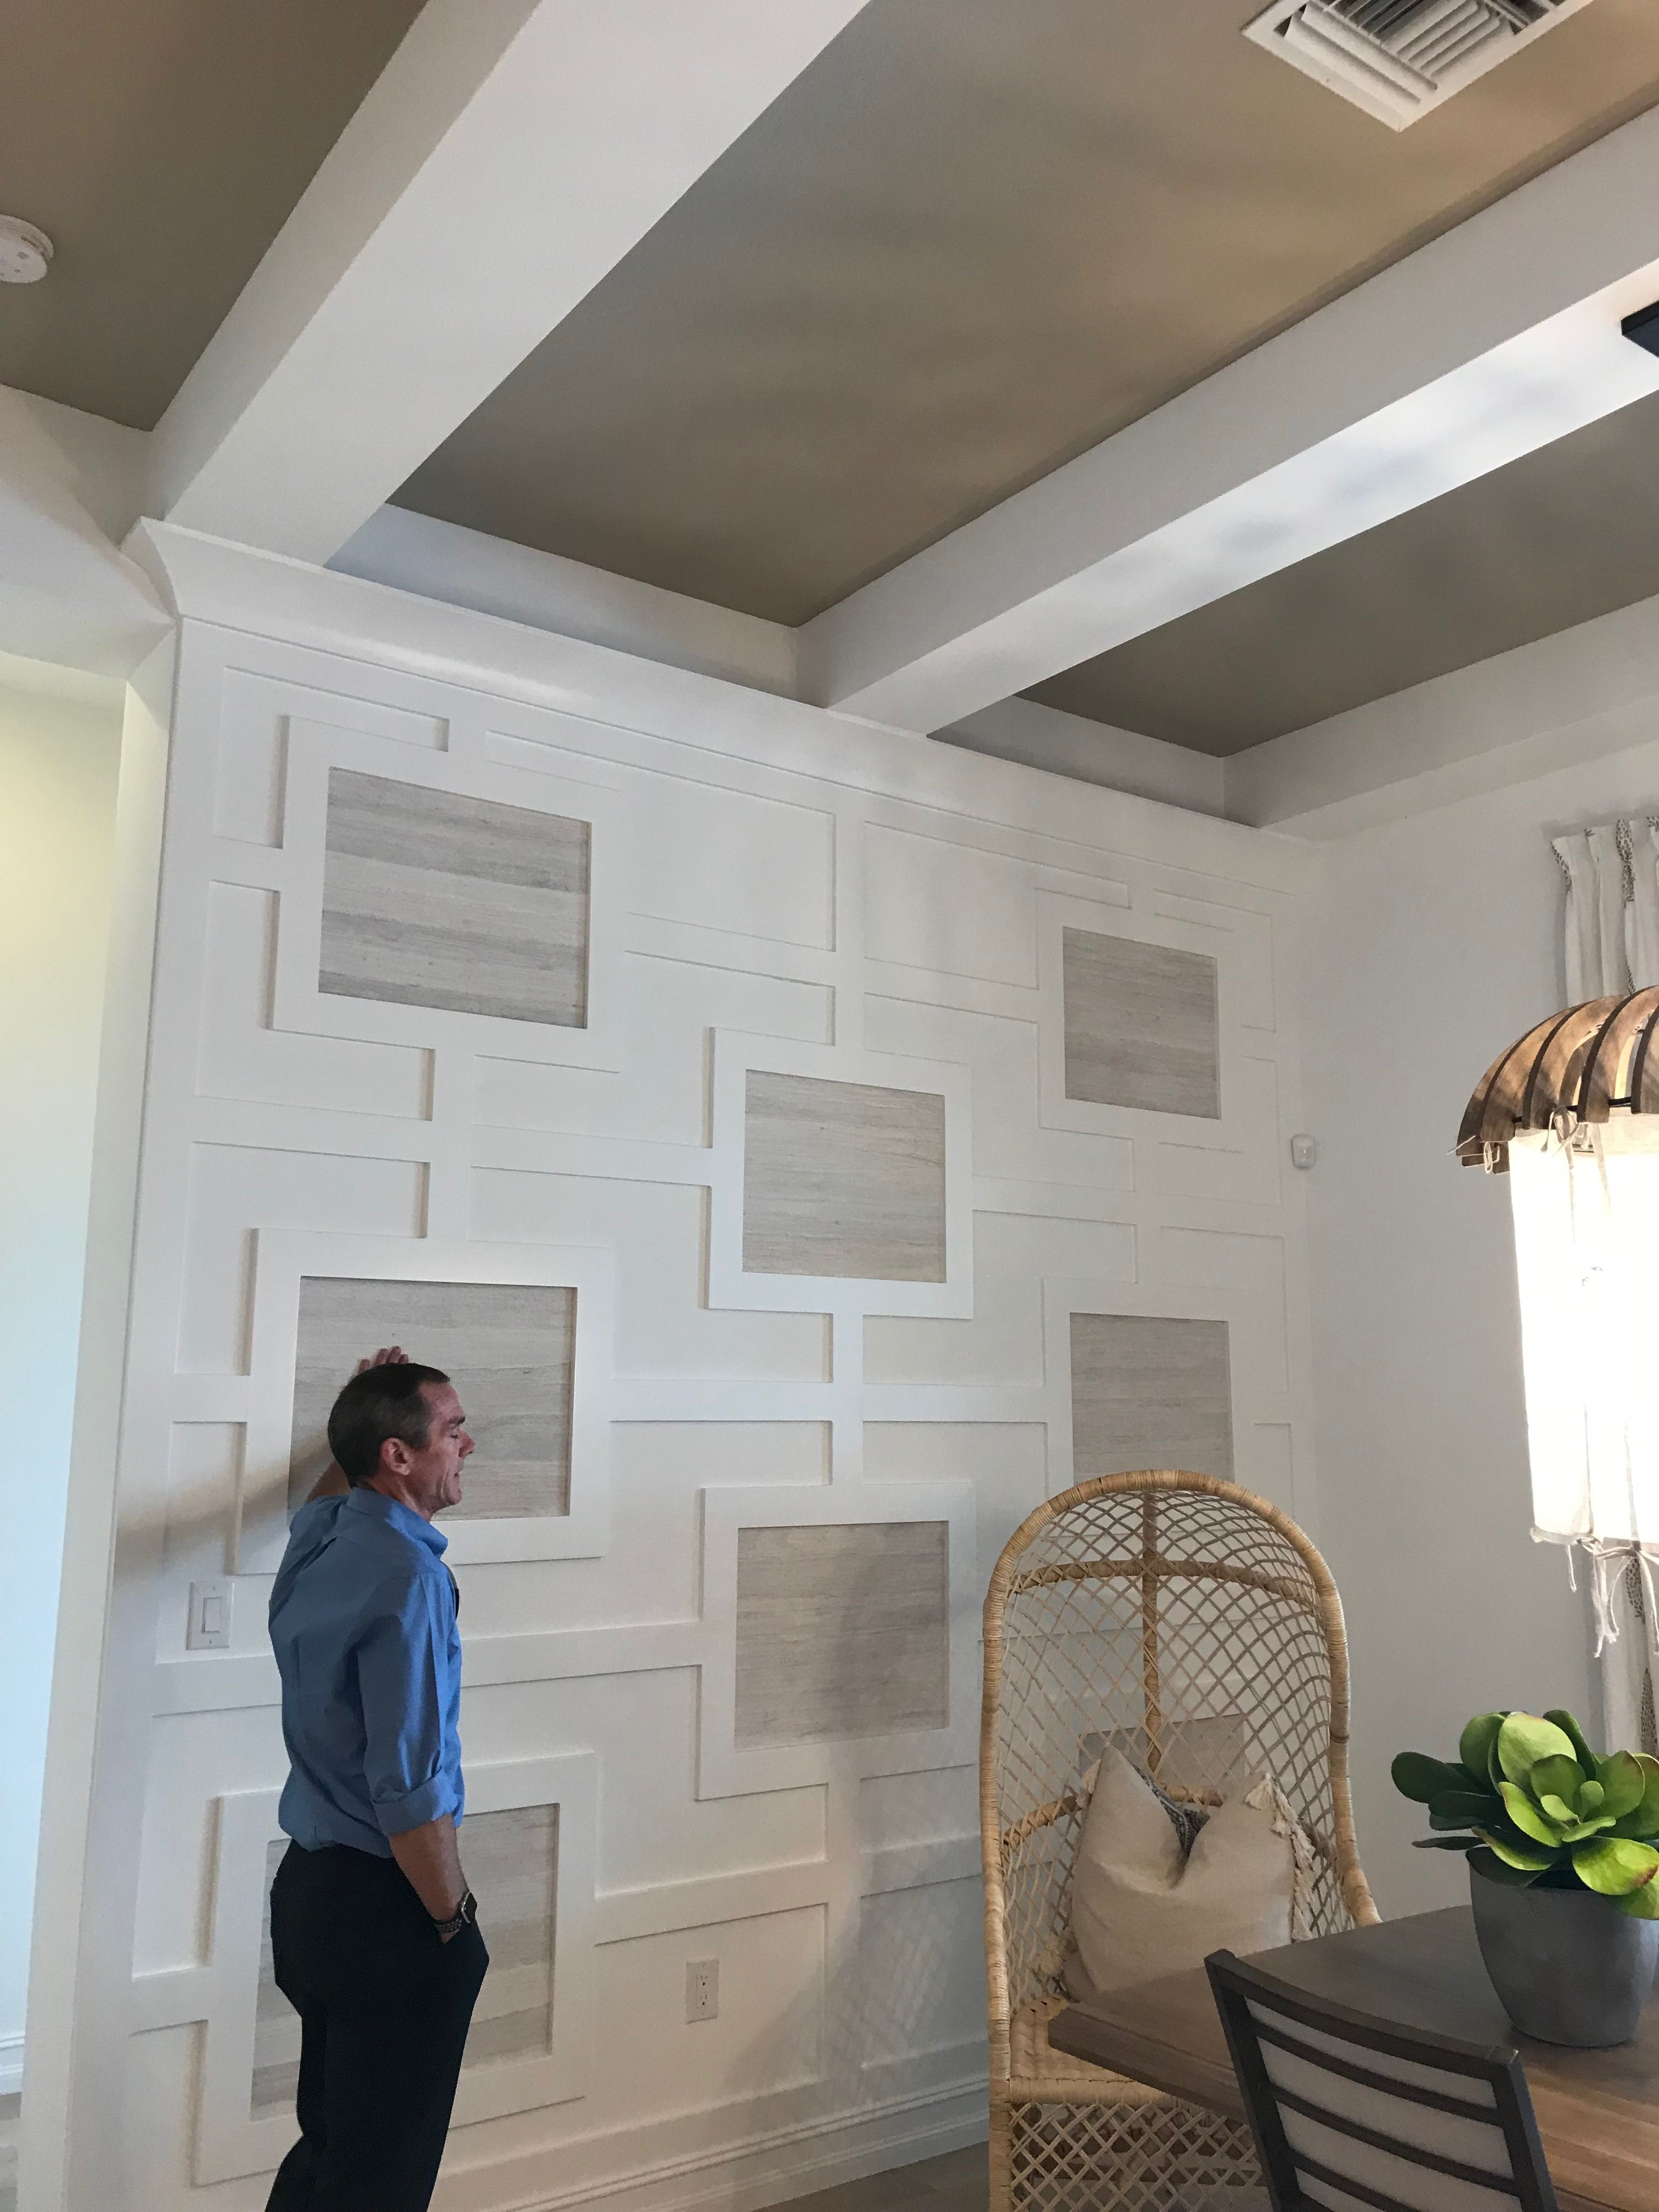 Cool Detail In The Trim Work Family Room Walls Home Renovation